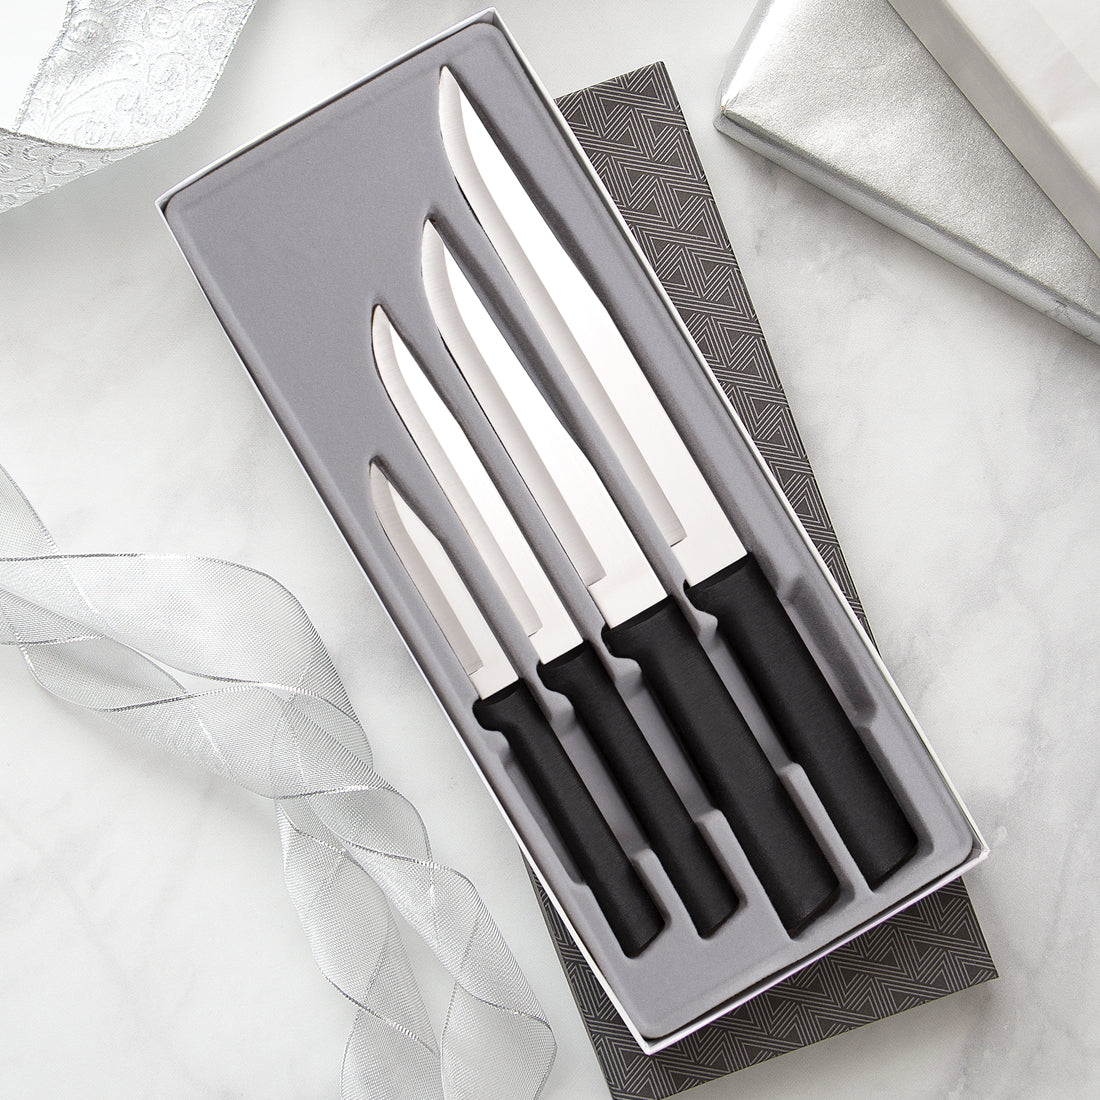 Rada Cutlery Wedding Register Gift Set with silver handles.